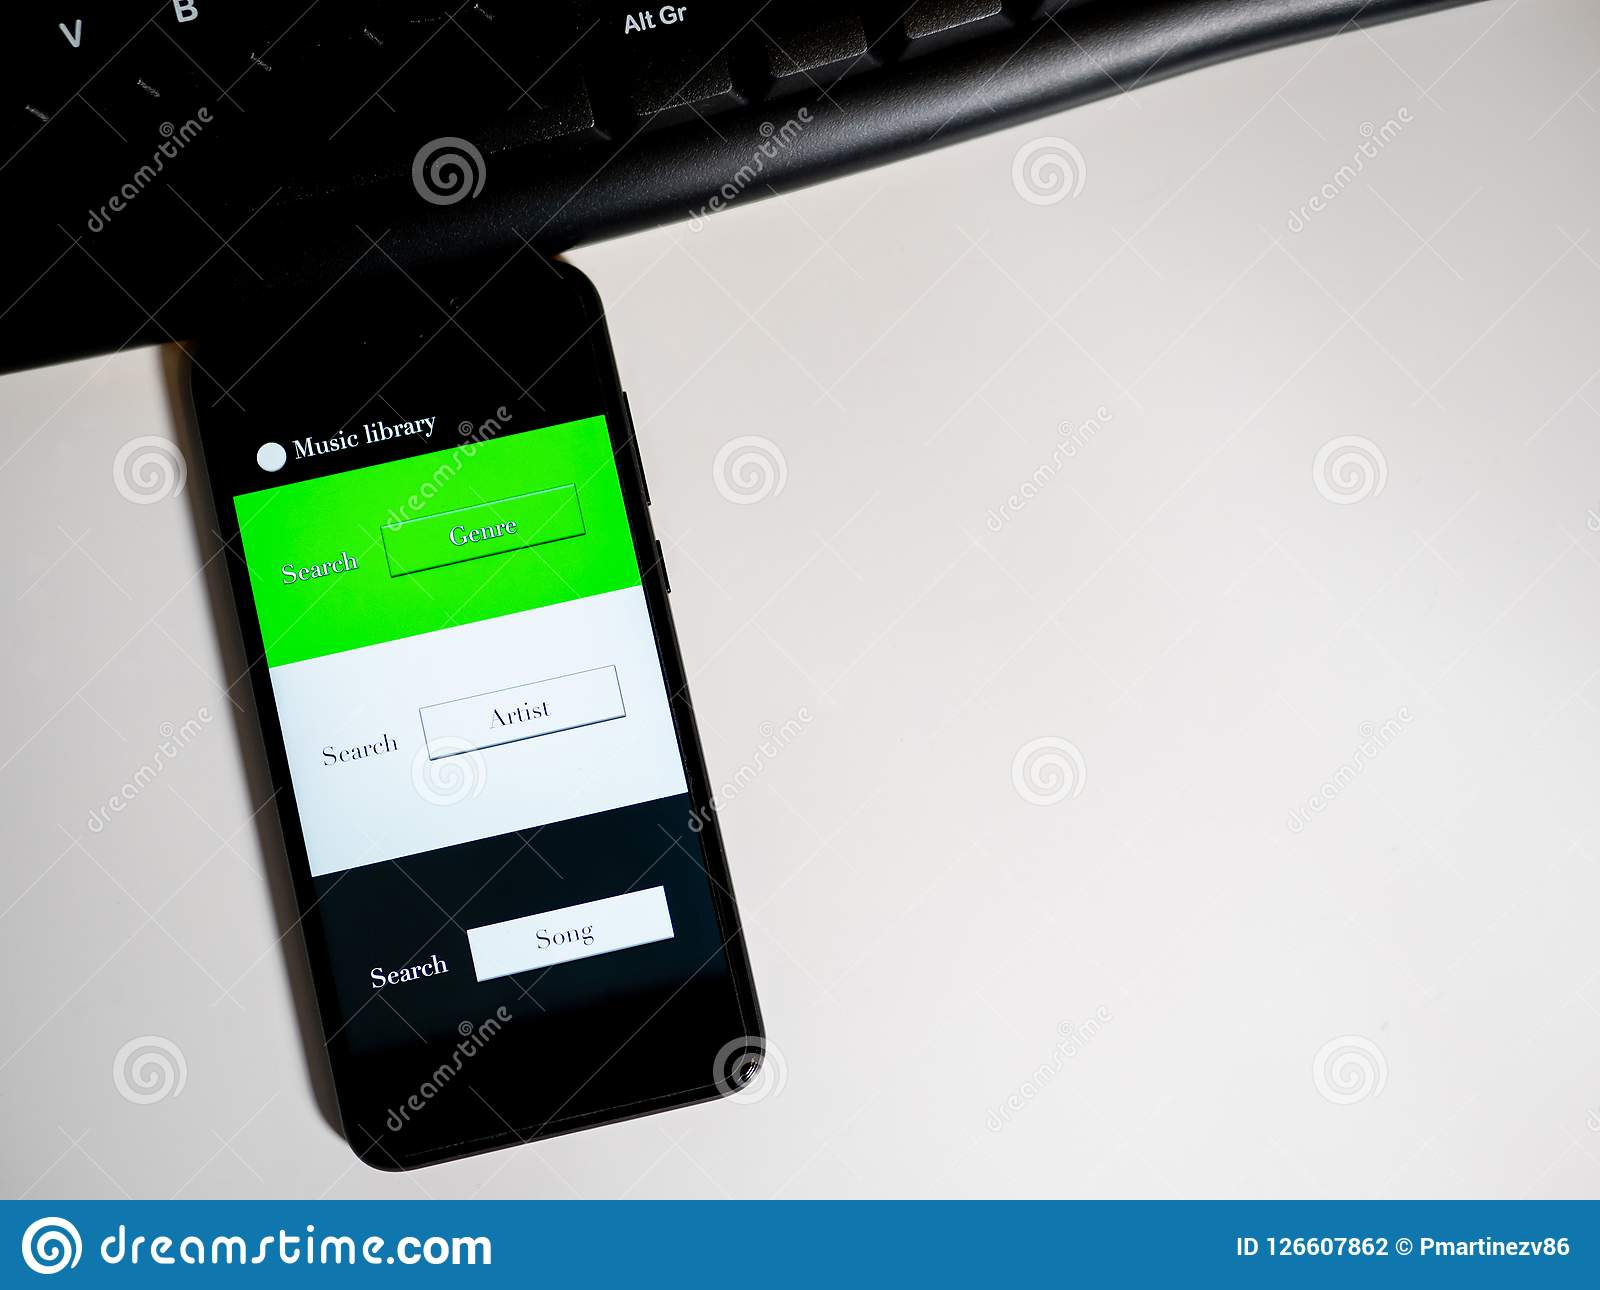 Music App In Phone With Keyboard Stock Photo - Image of message